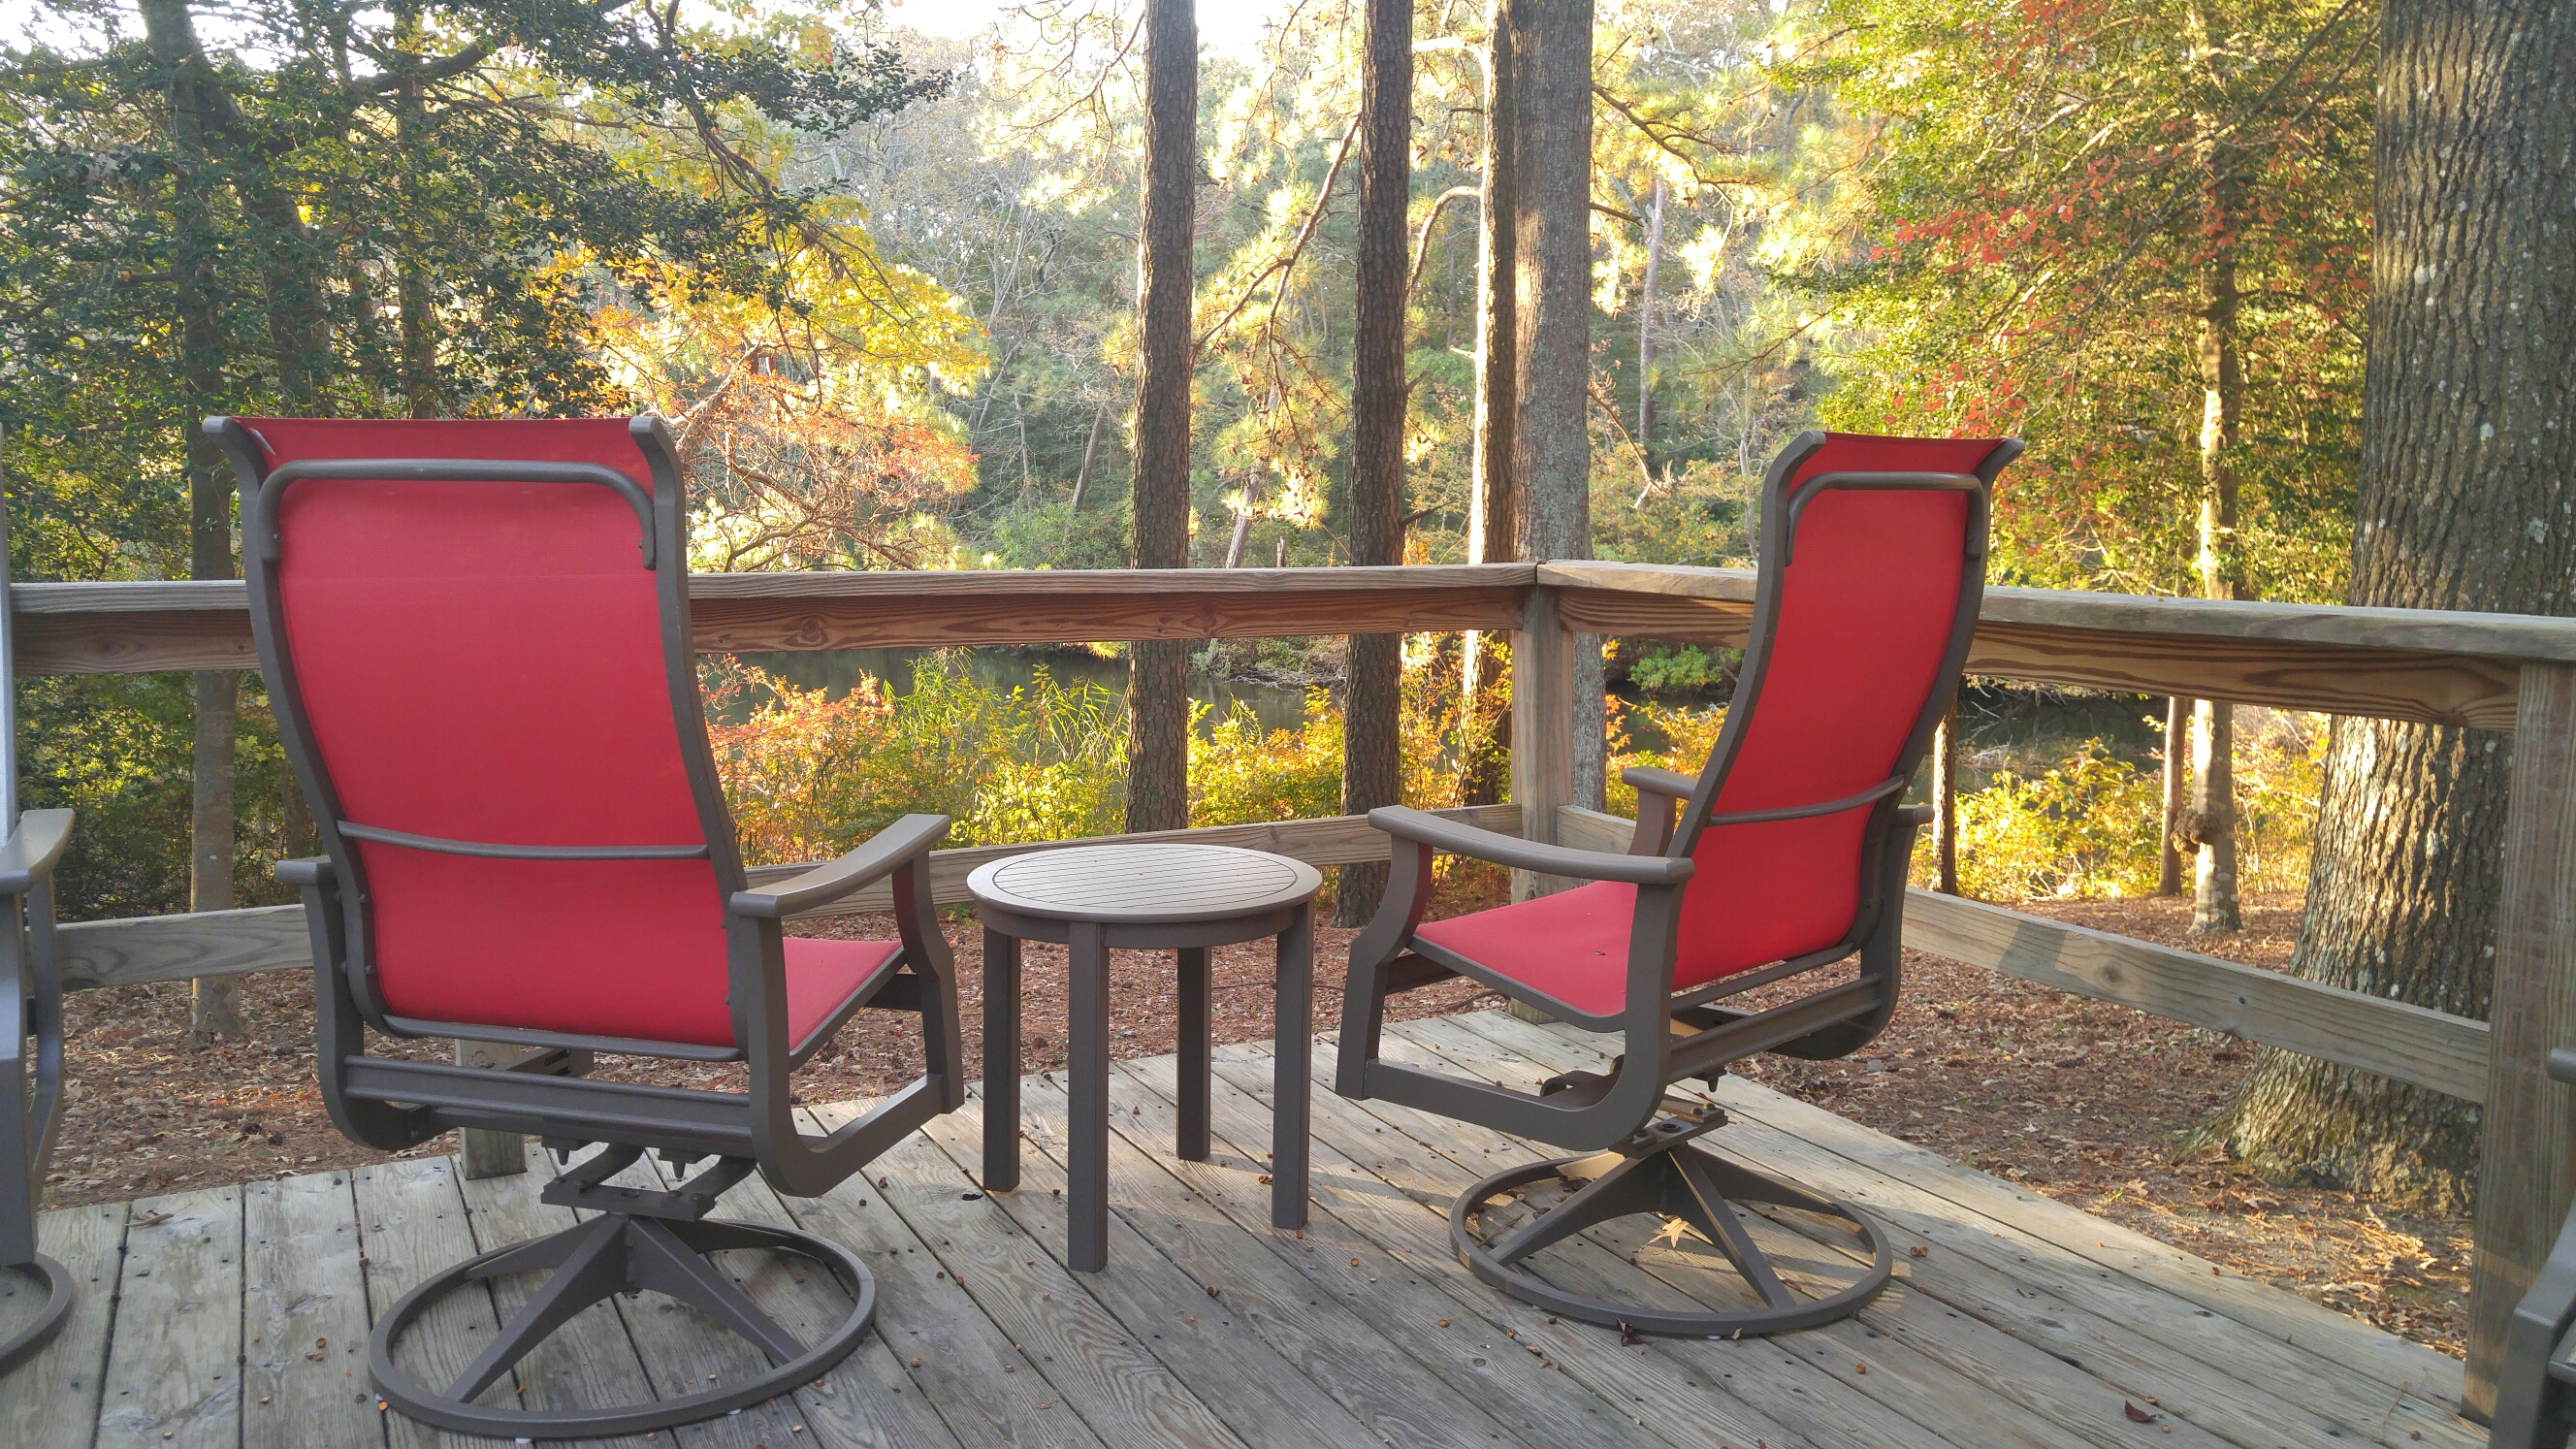 2 red chairs deck